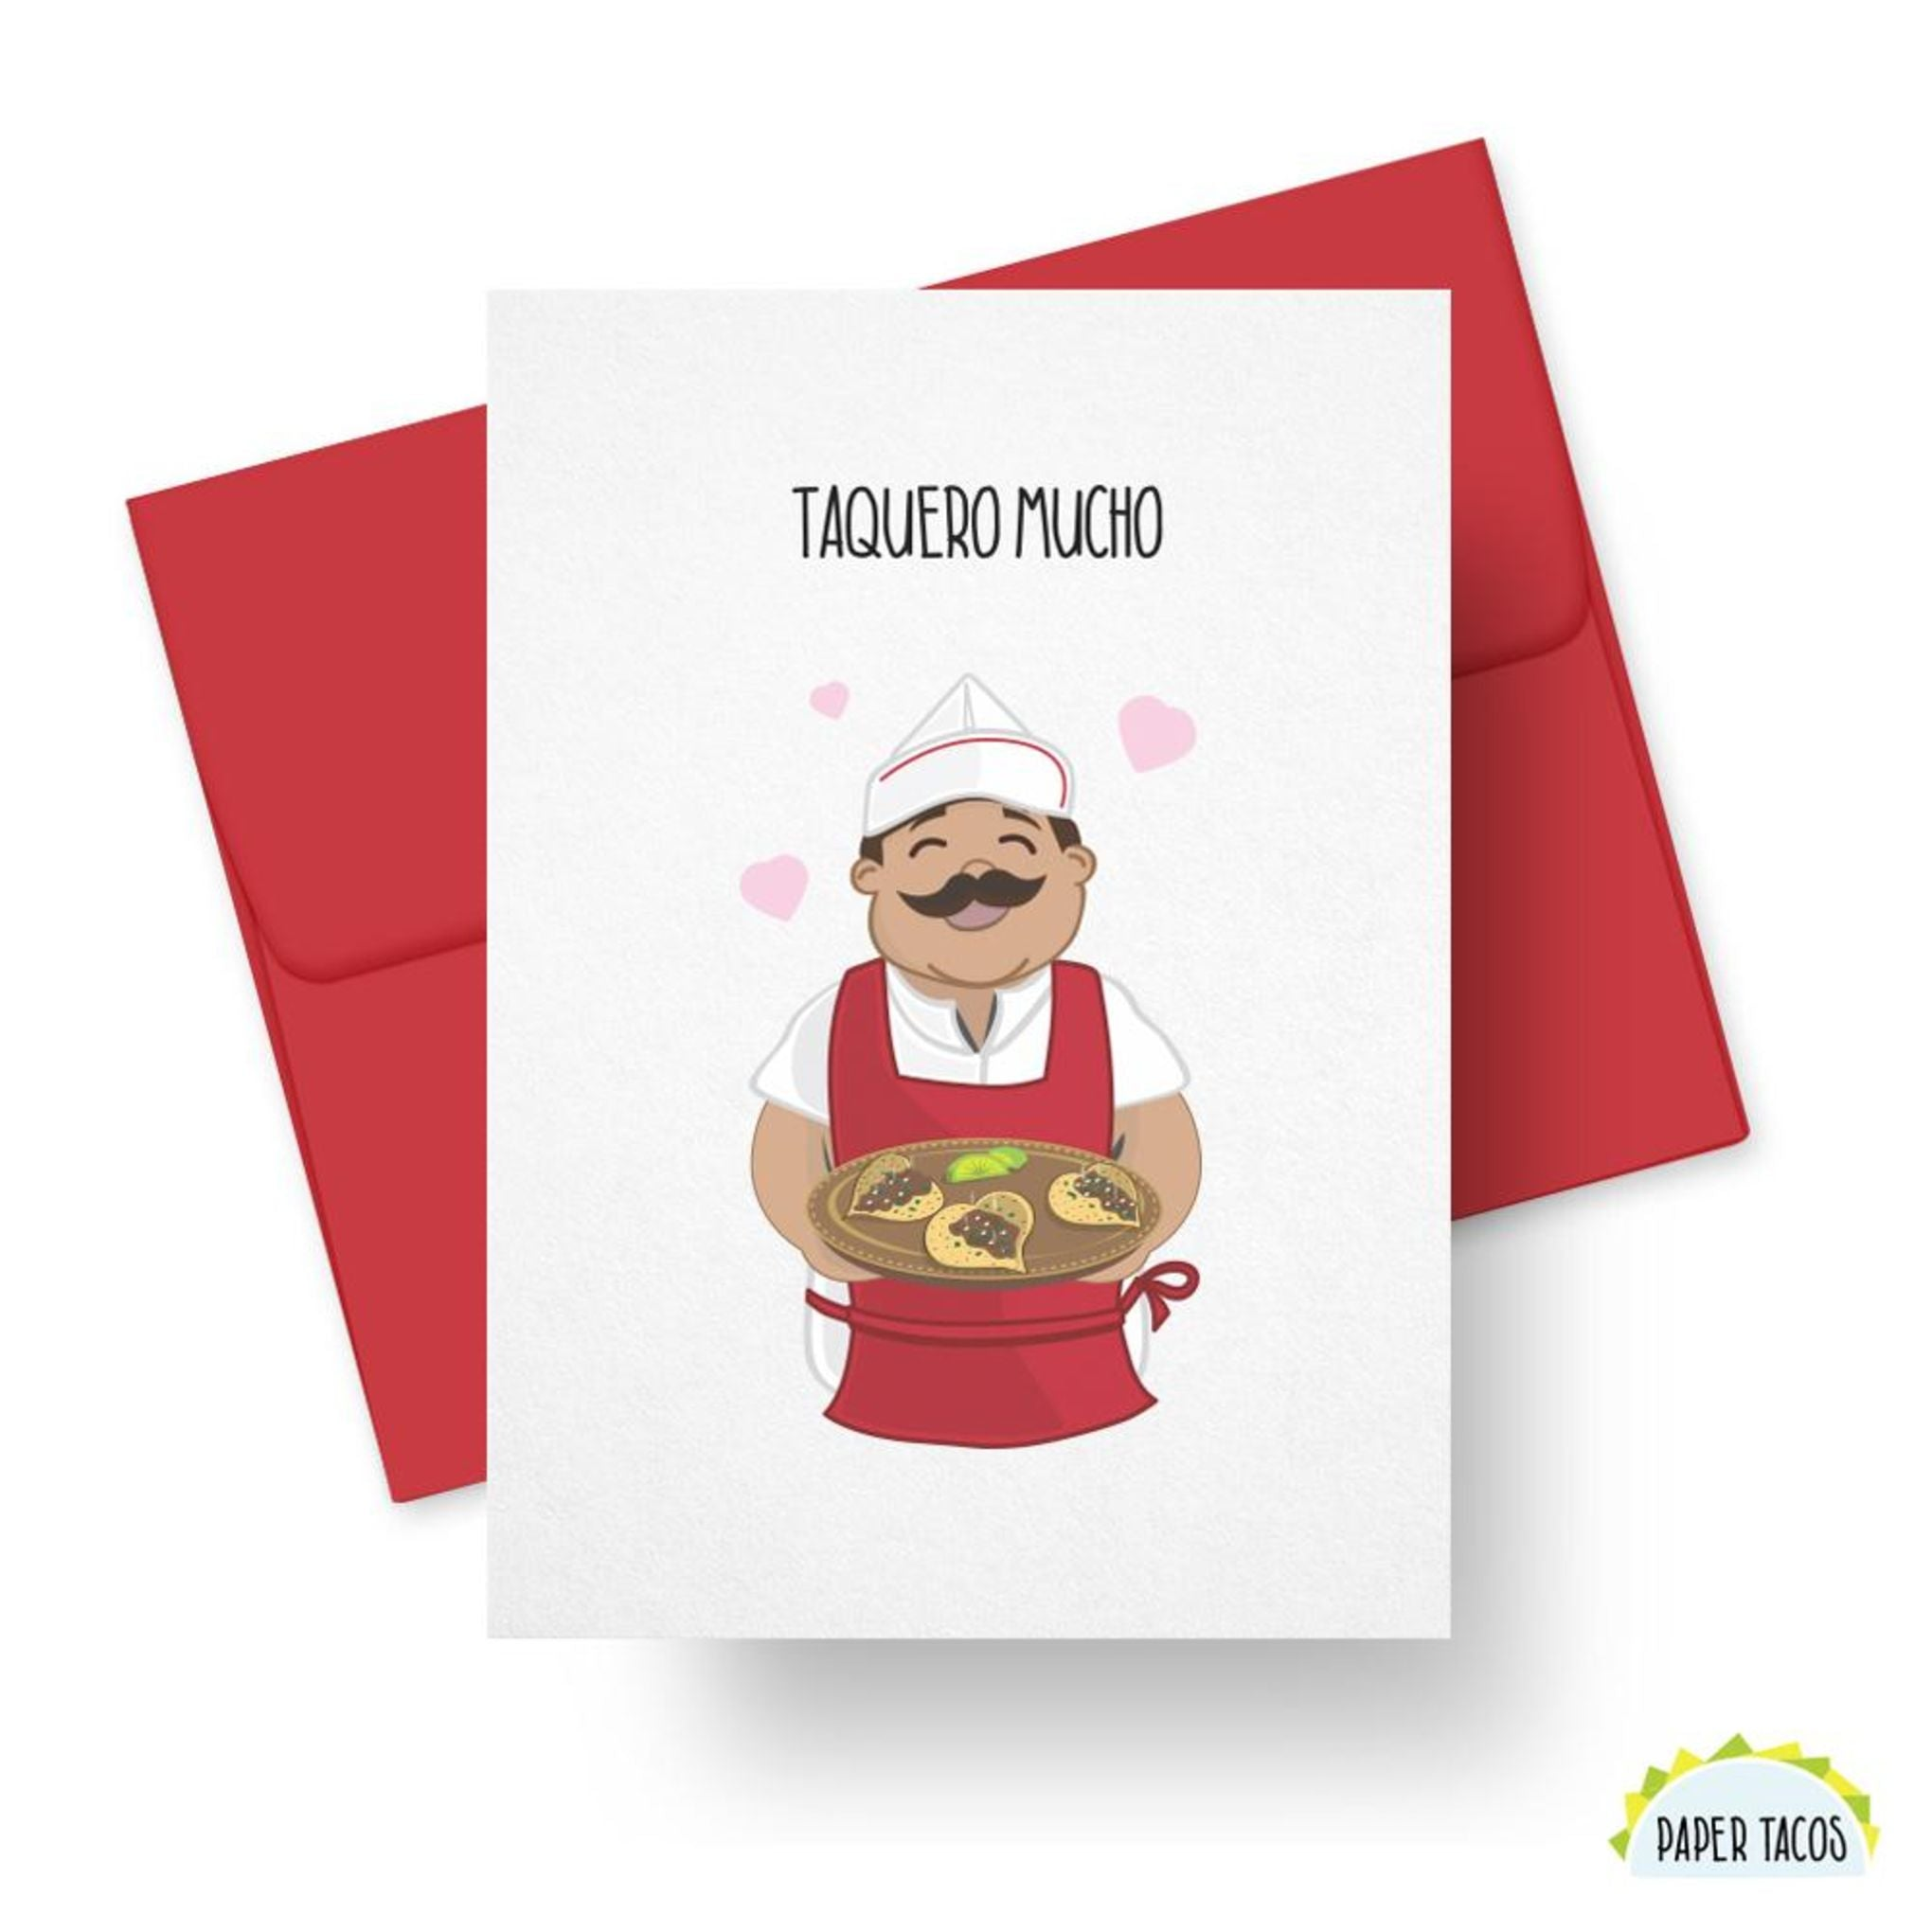 Picture of Taquero Mucho card by PAPER TACOS